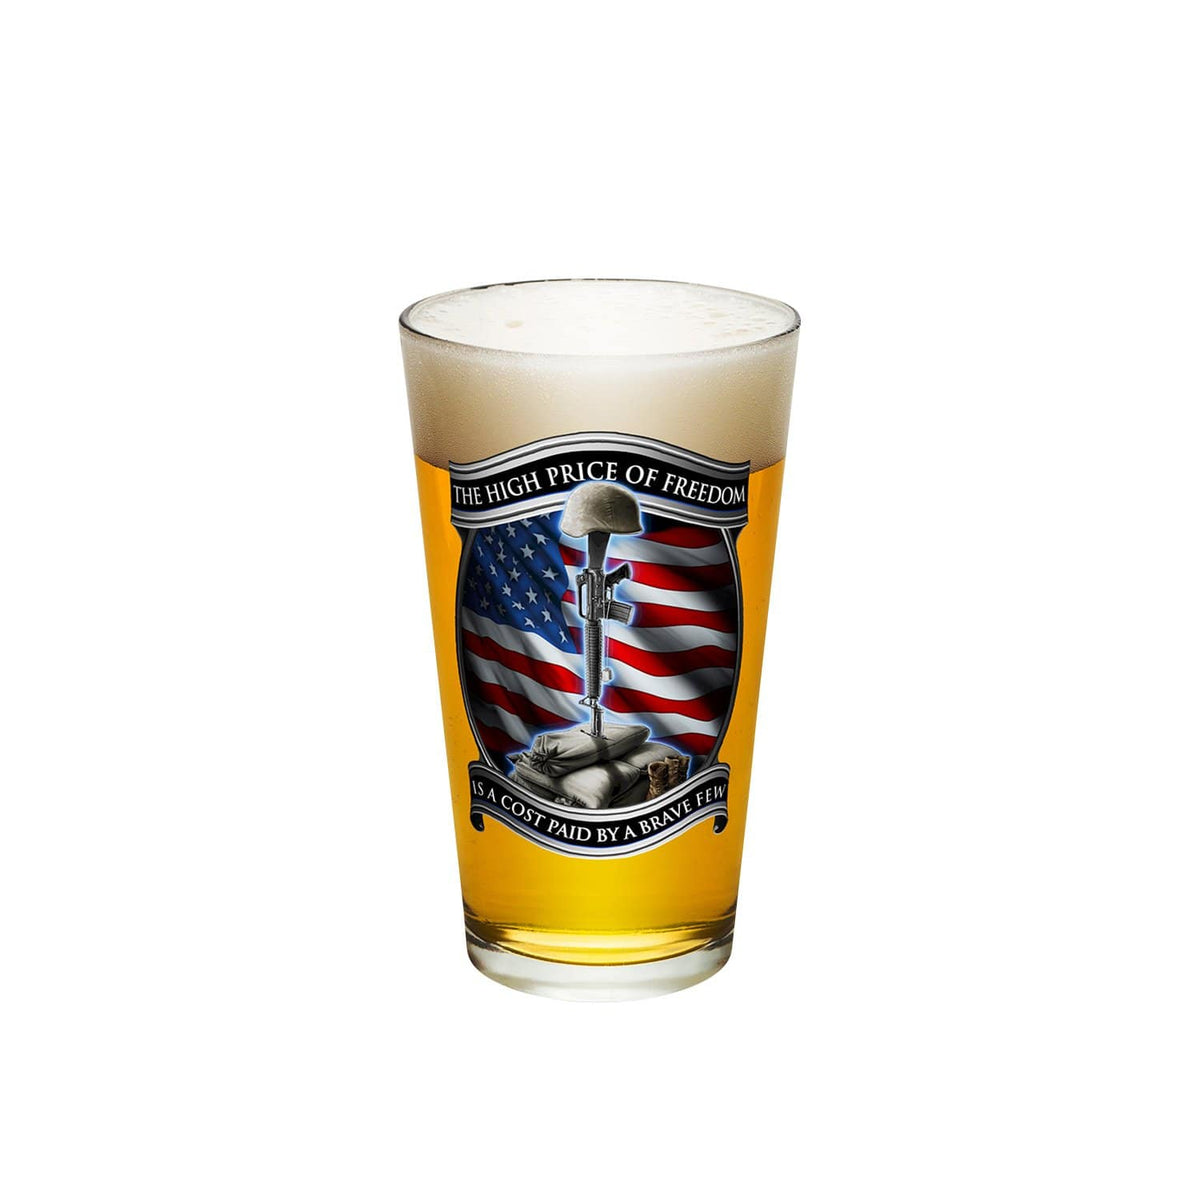 High Price Of Freedom Pint Glass